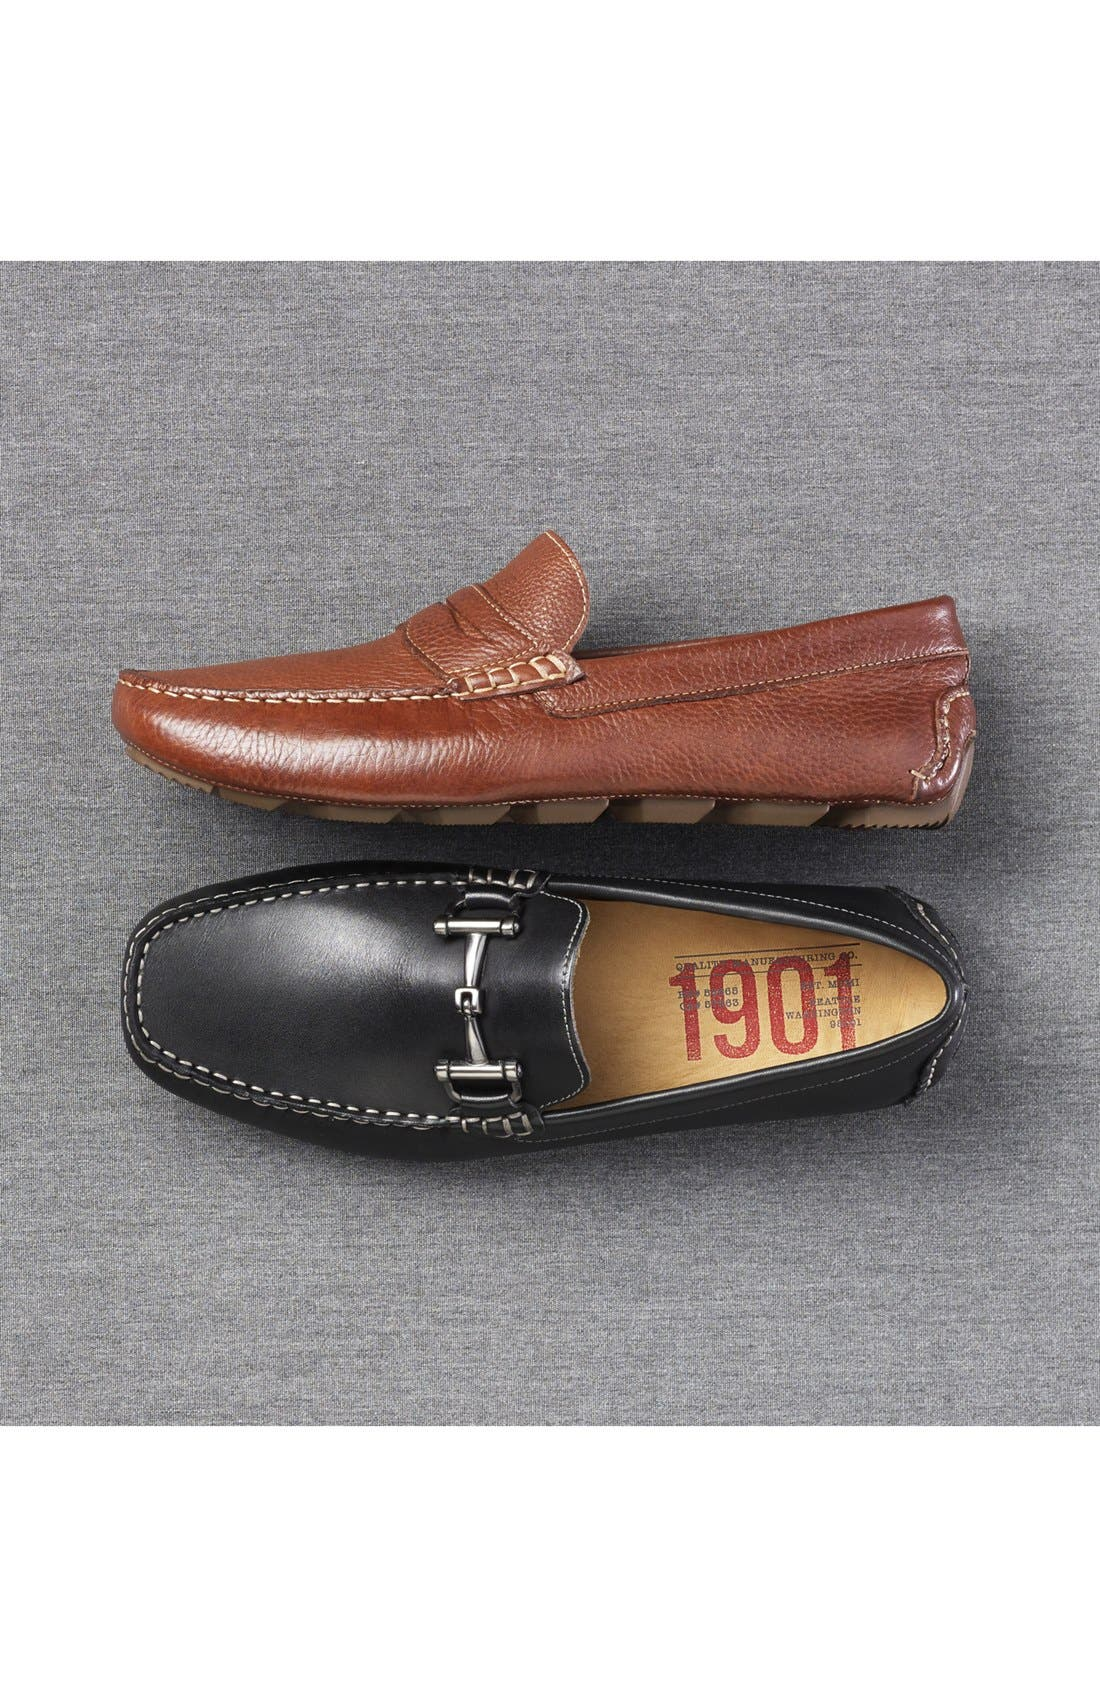 'Bermuda' Penny Loafer,                             Alternate thumbnail 5, color,                             TAN LEATHER